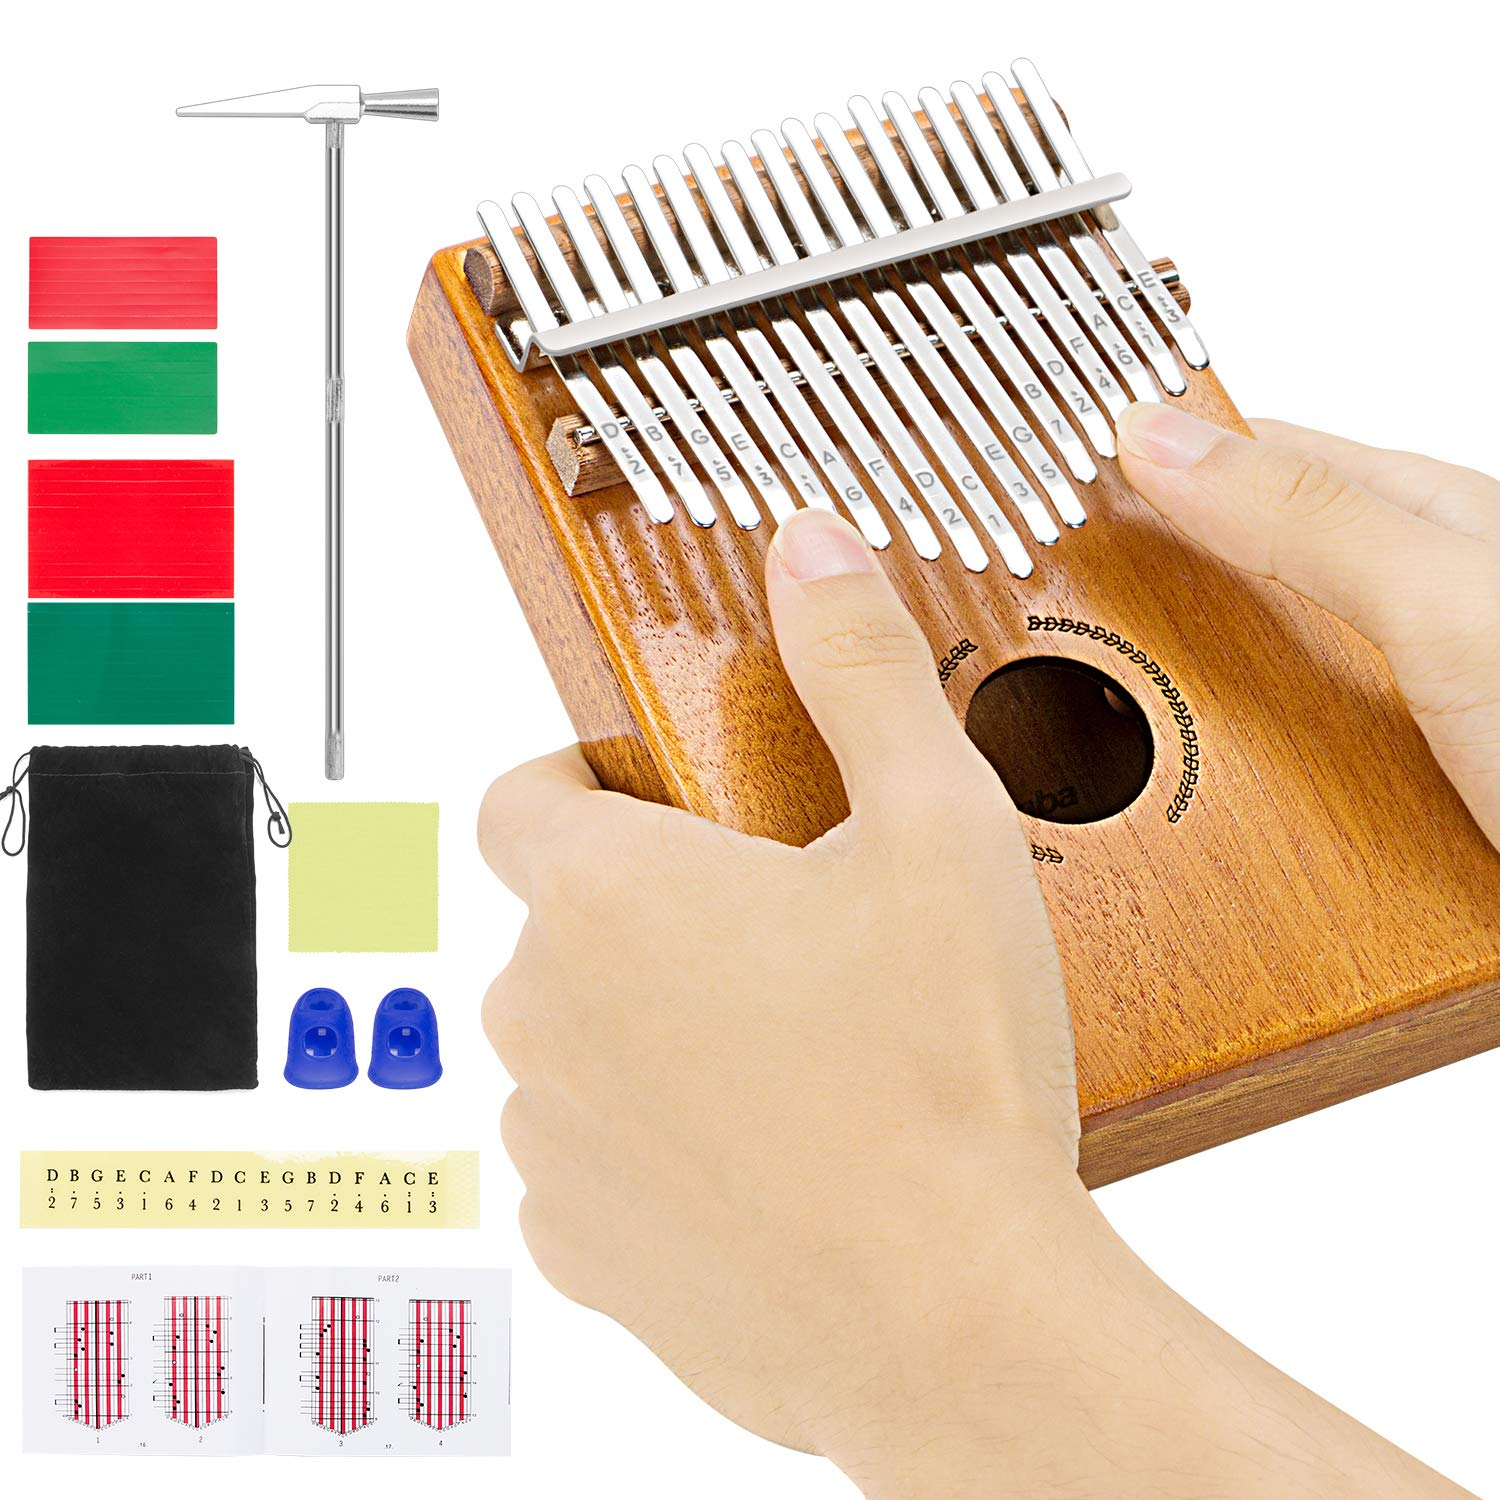 Kalimba Thumb Piano 17 Keys with Engraved Notes, RenFox Finger Piano with Study Instructions and Tuning Hammer Portable African Mbira Sanza Gift for Kids Adult Beginners